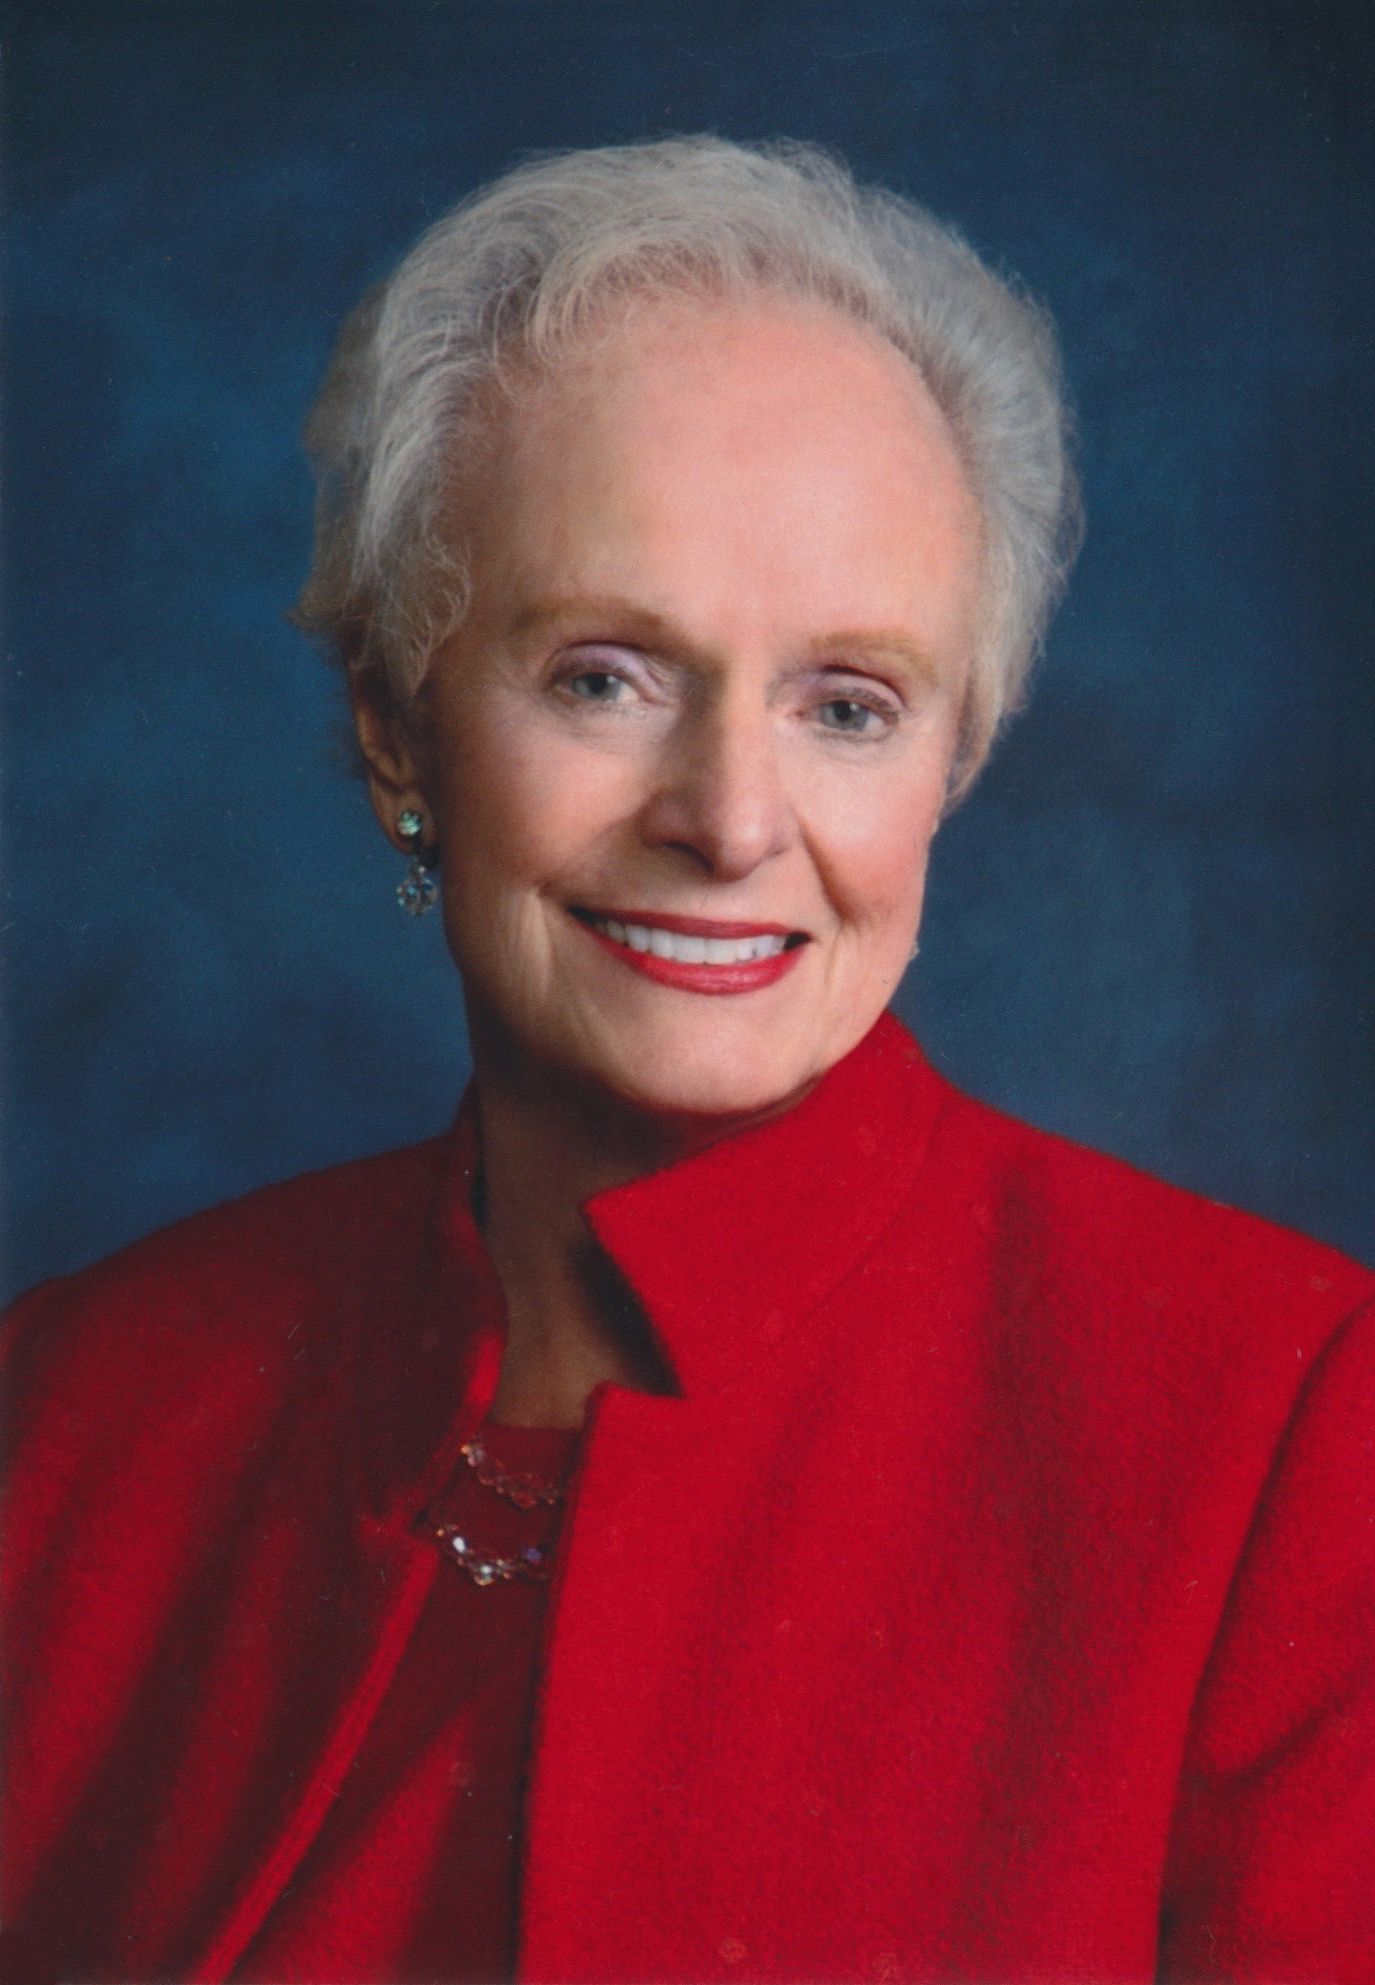 Portrait photo of Maggie Tinsman, an older white woman with white hair wearing a red coat.